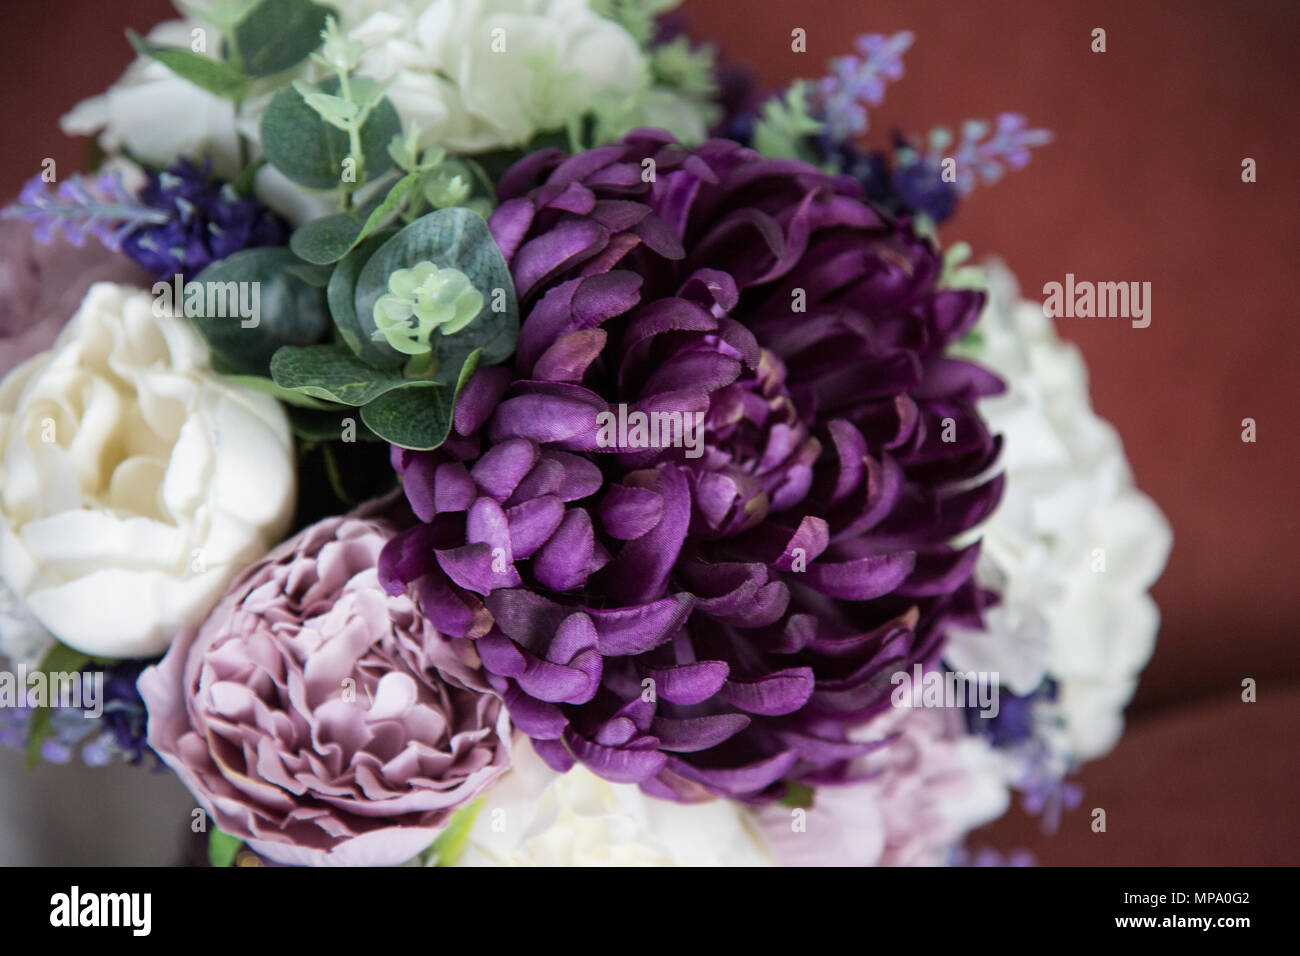 Close Up Of A Brides Bouquet On Her Wedding Day With Purple Flowers